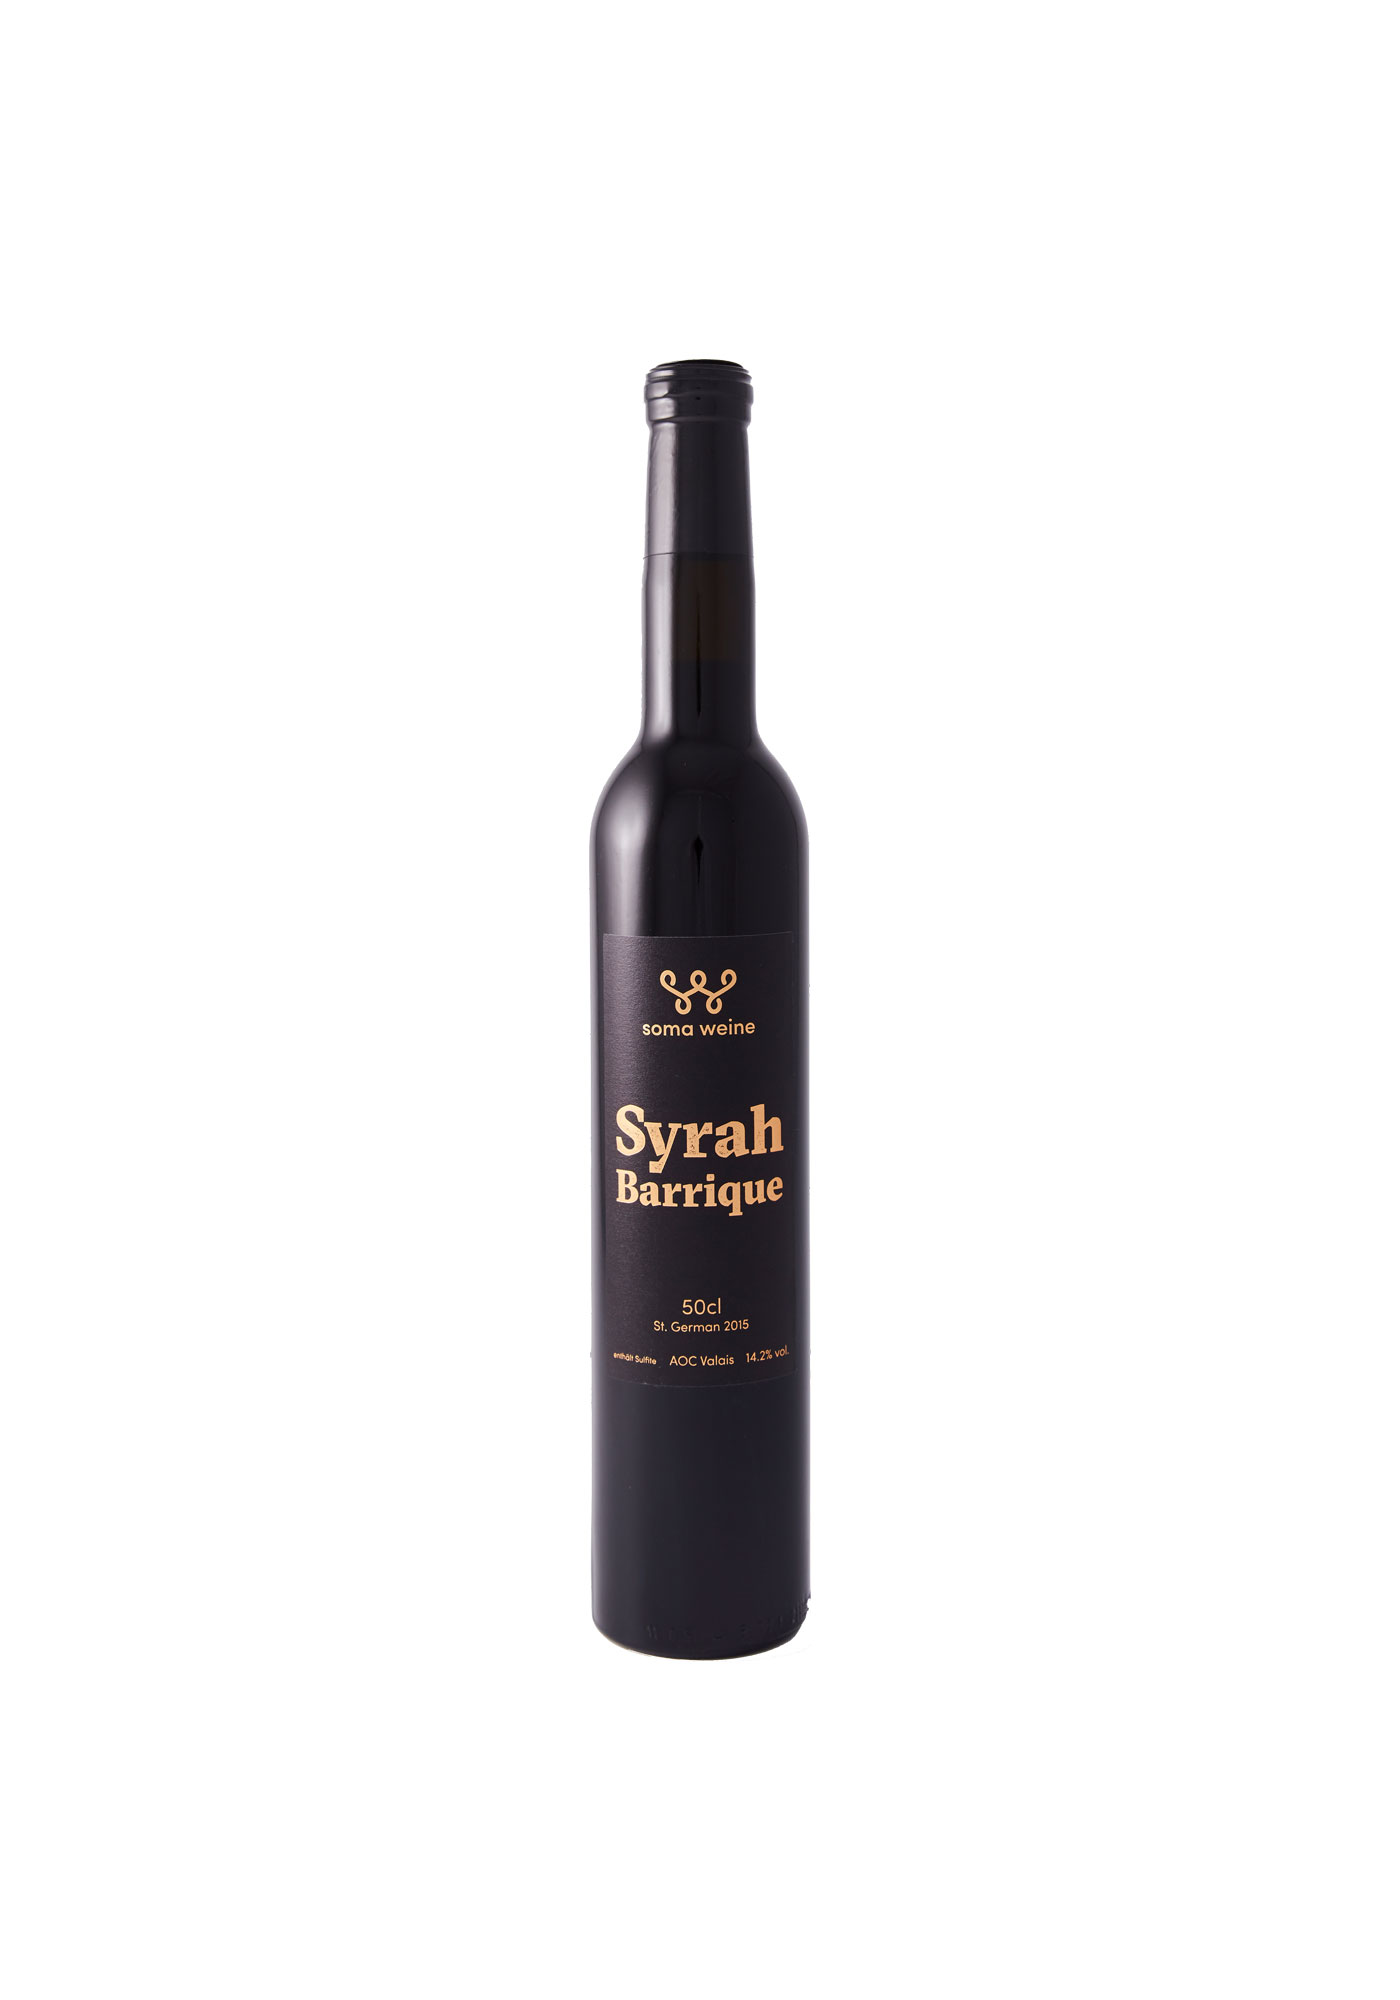 soma Weinflasche Syrah Barrique 2015